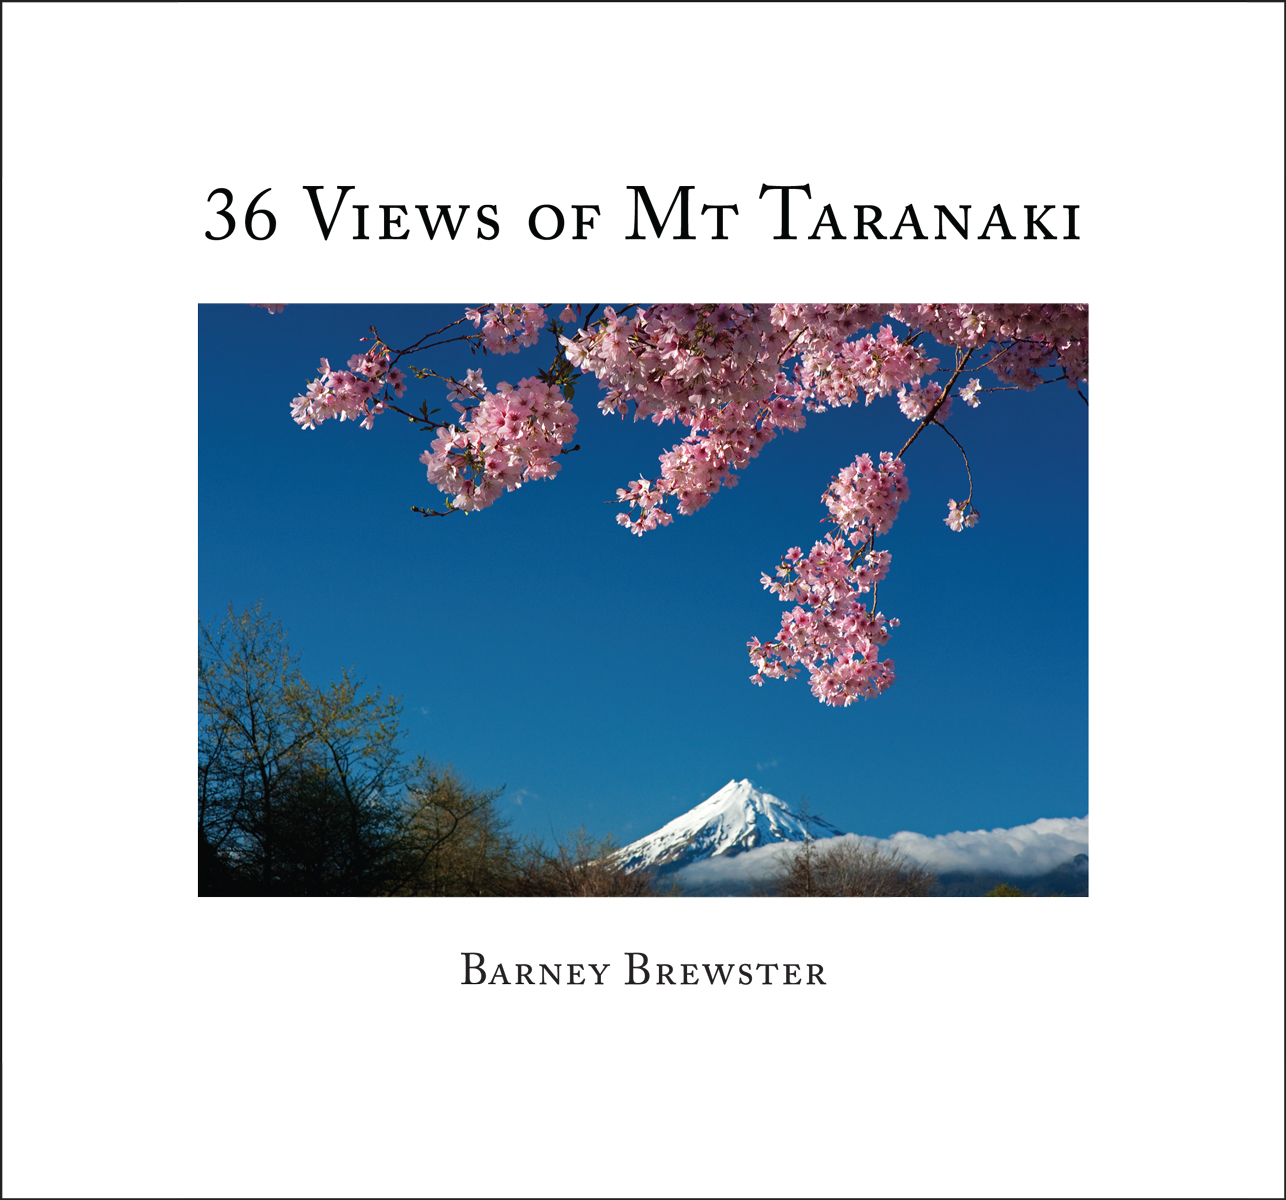 36-Views-of-Mt-Taranaki-front-cover